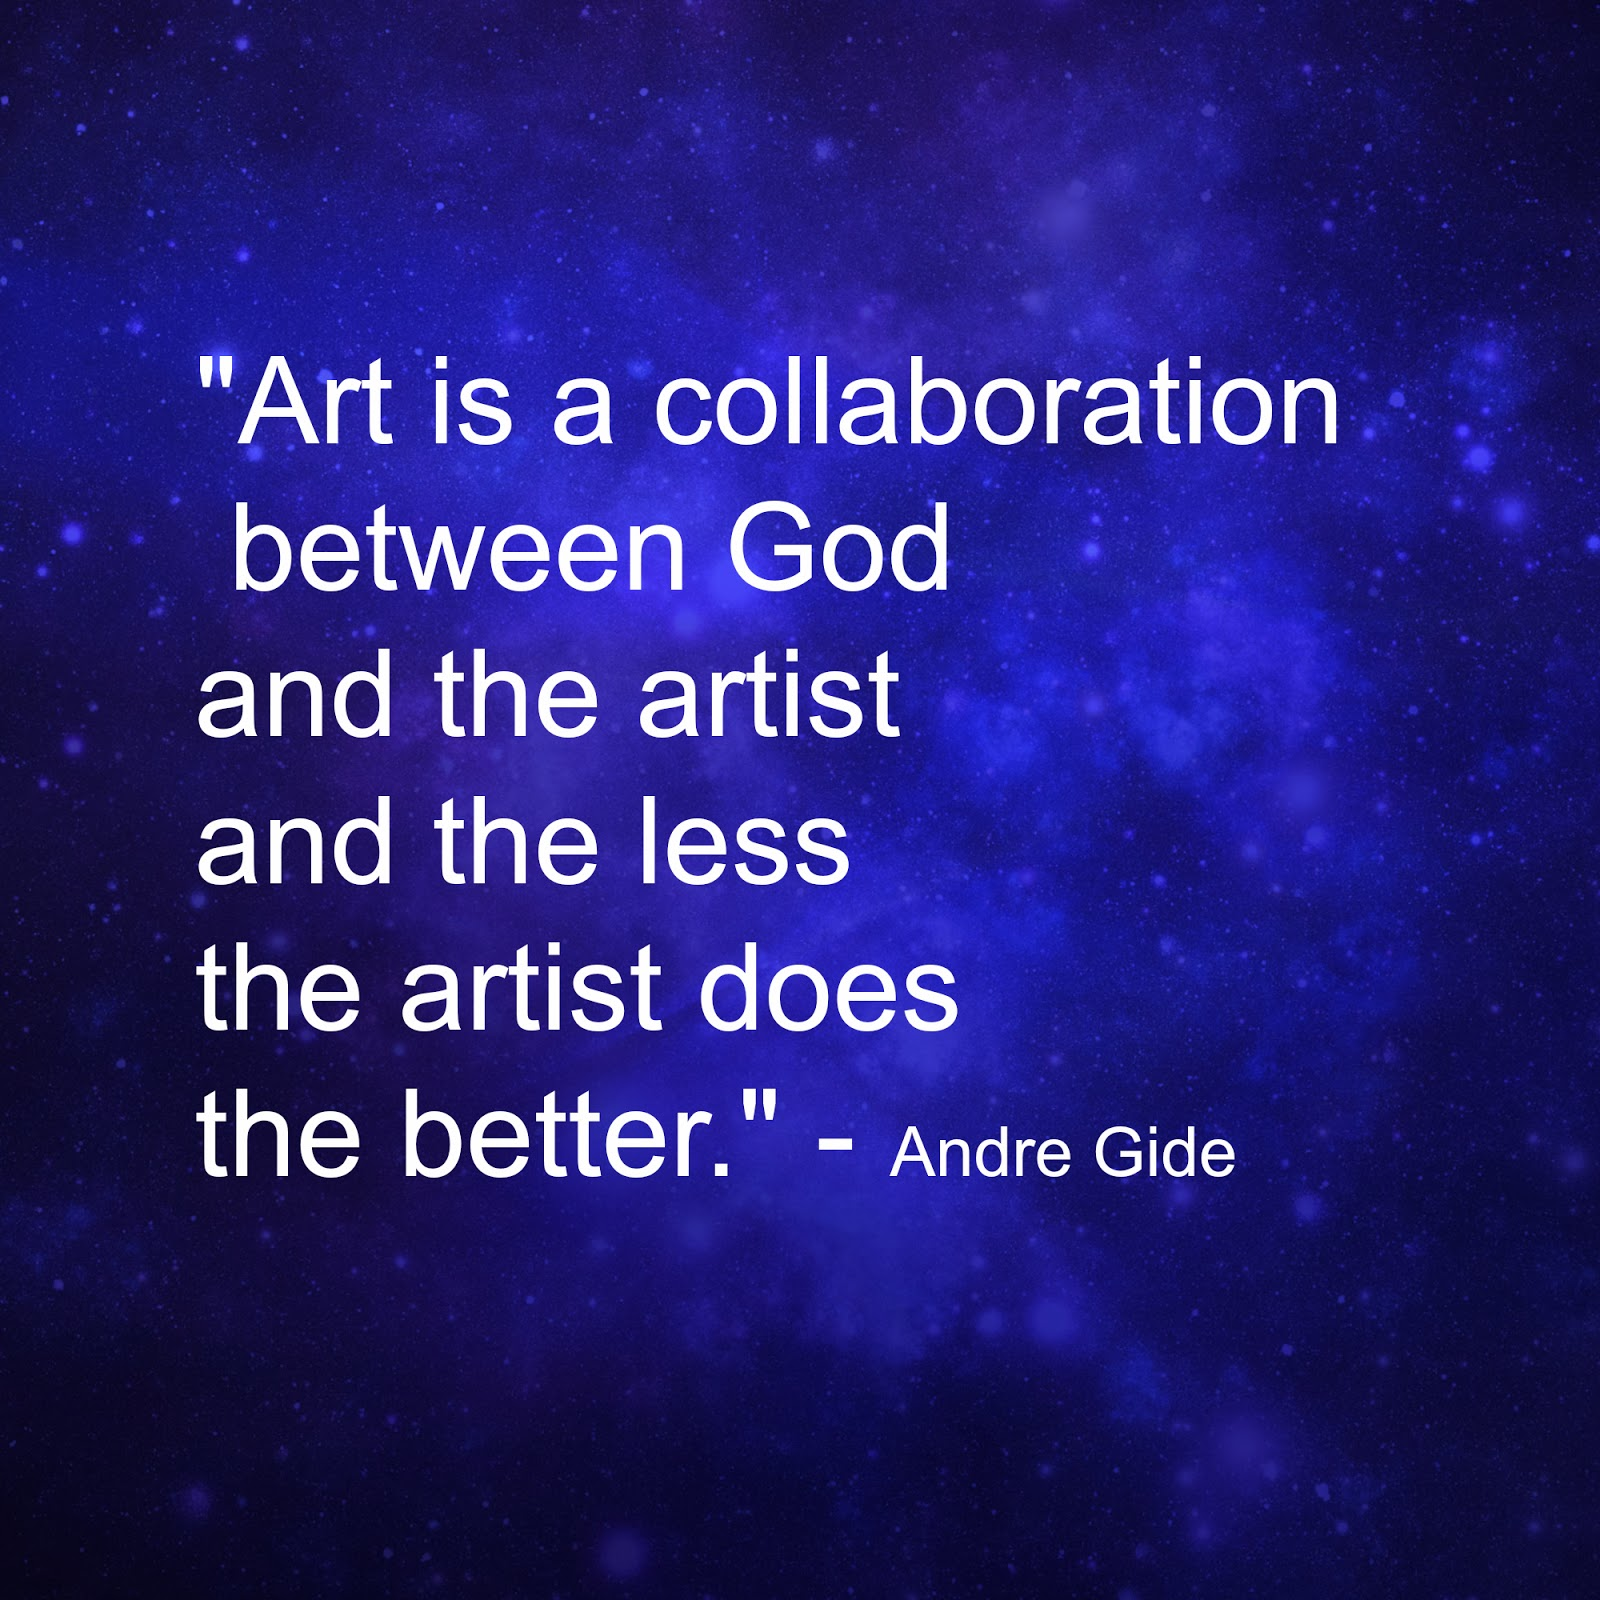 art quote by Andre Gide